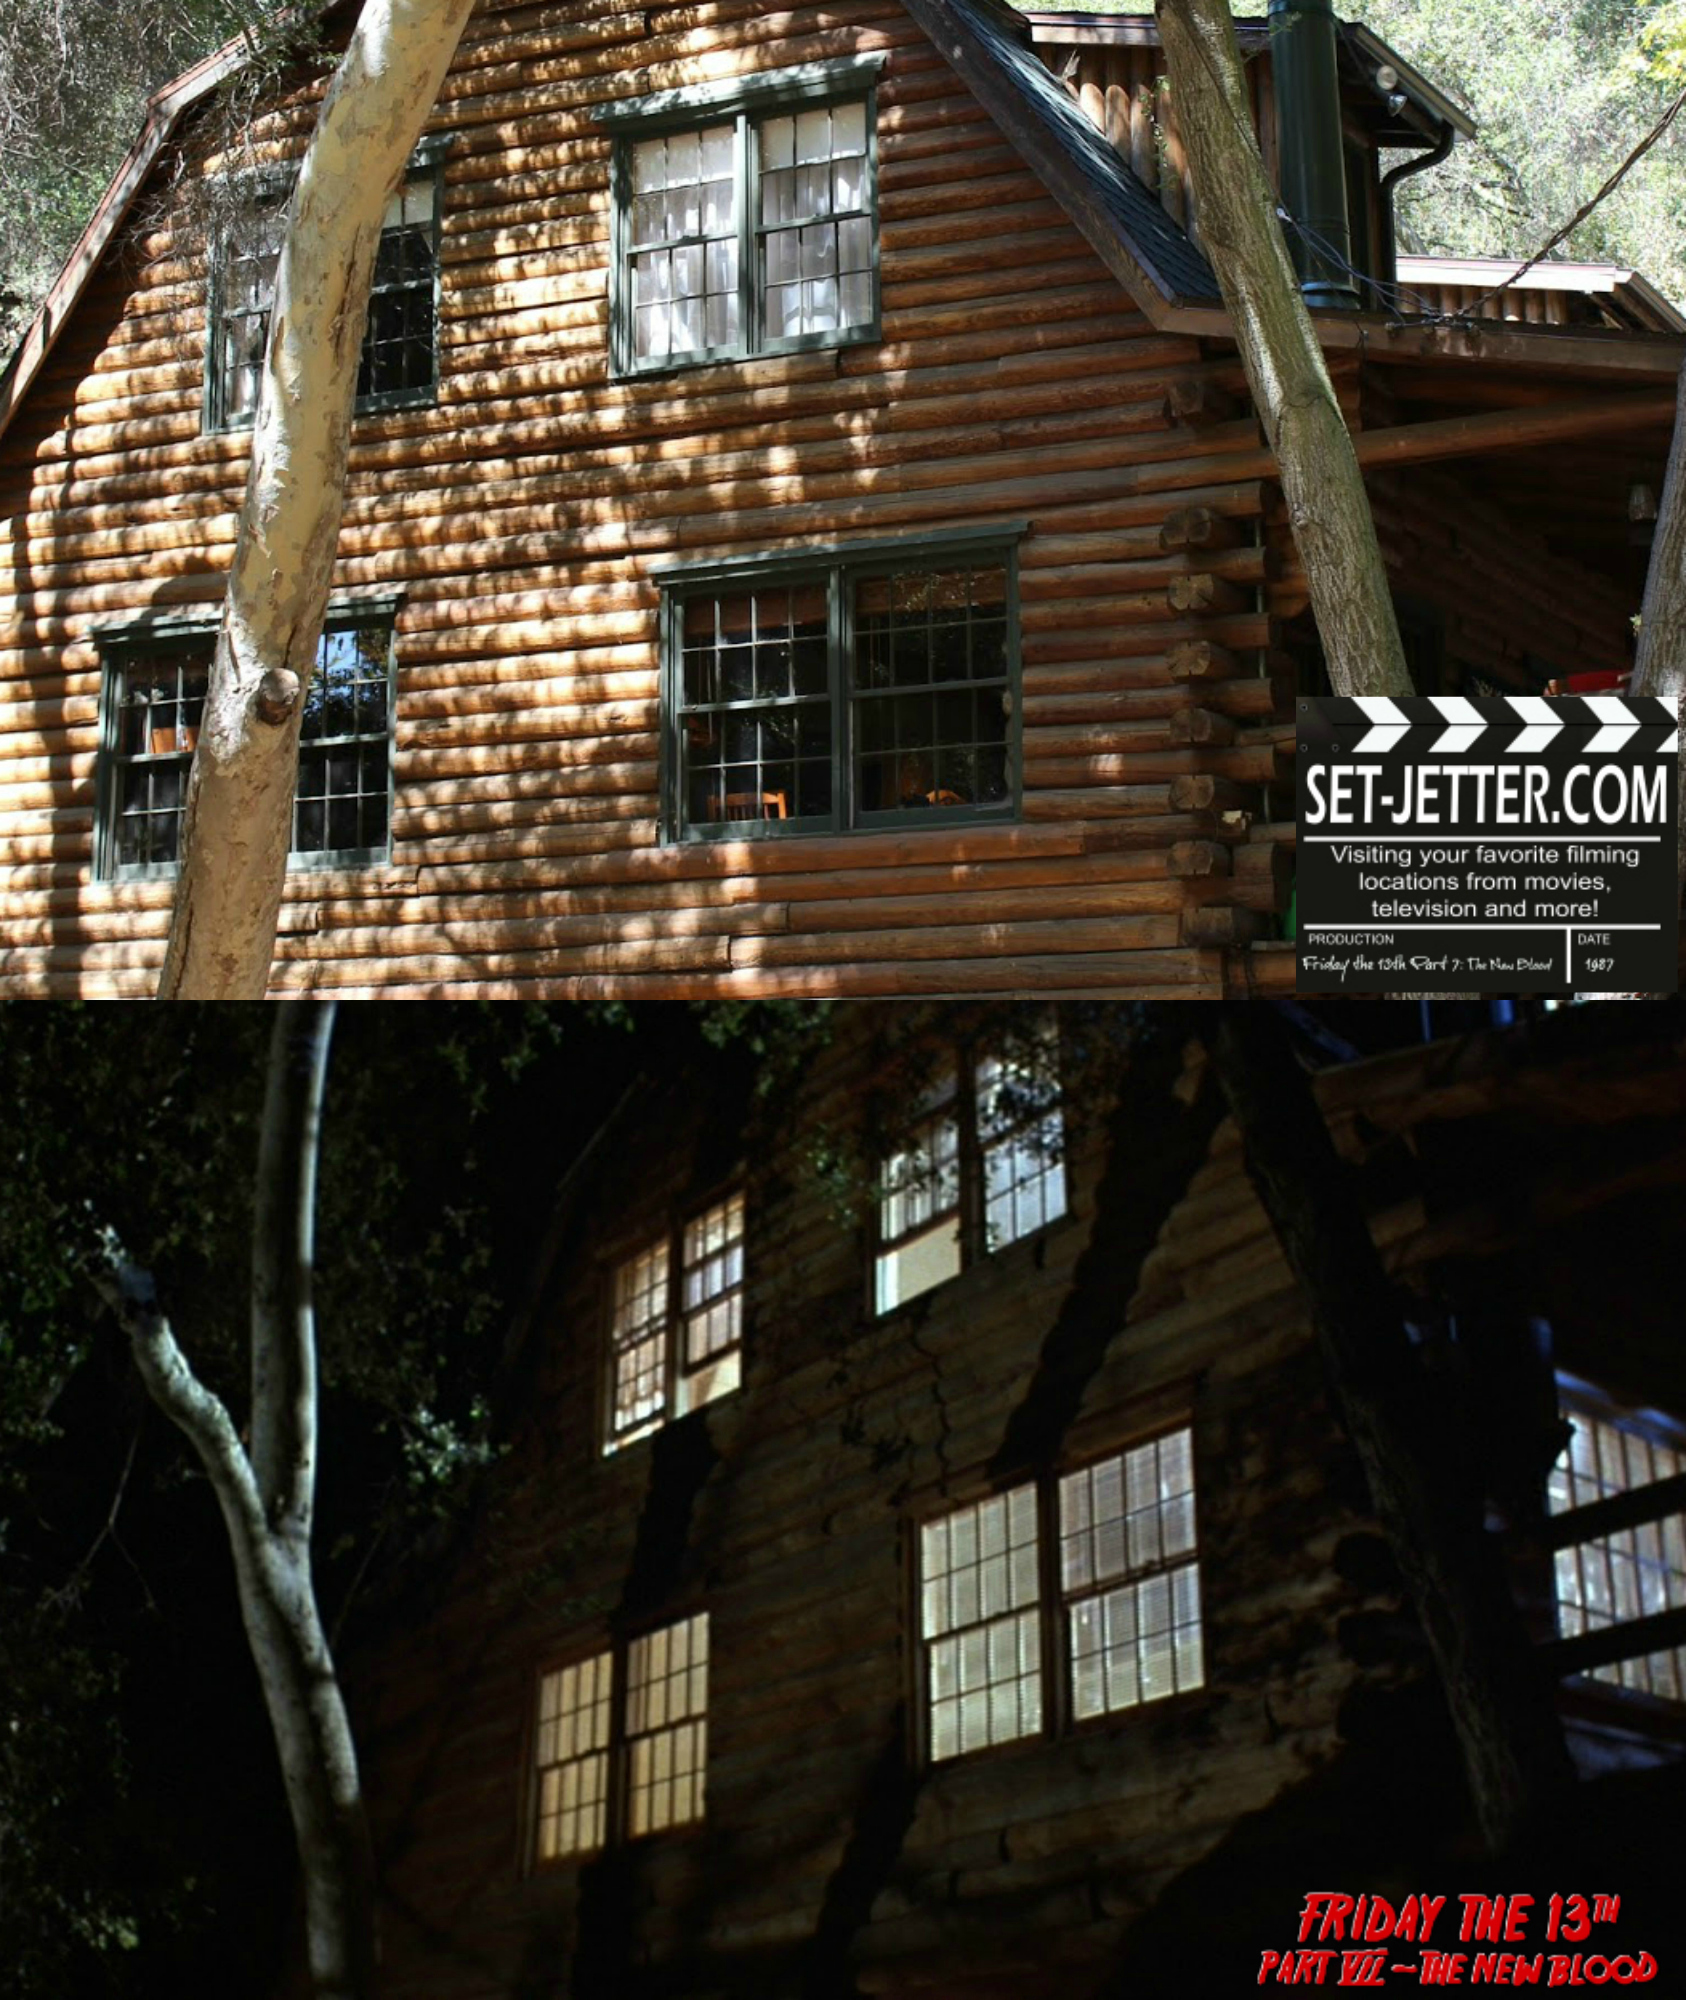 Friday the 13th Part VII comparison 03.jpg